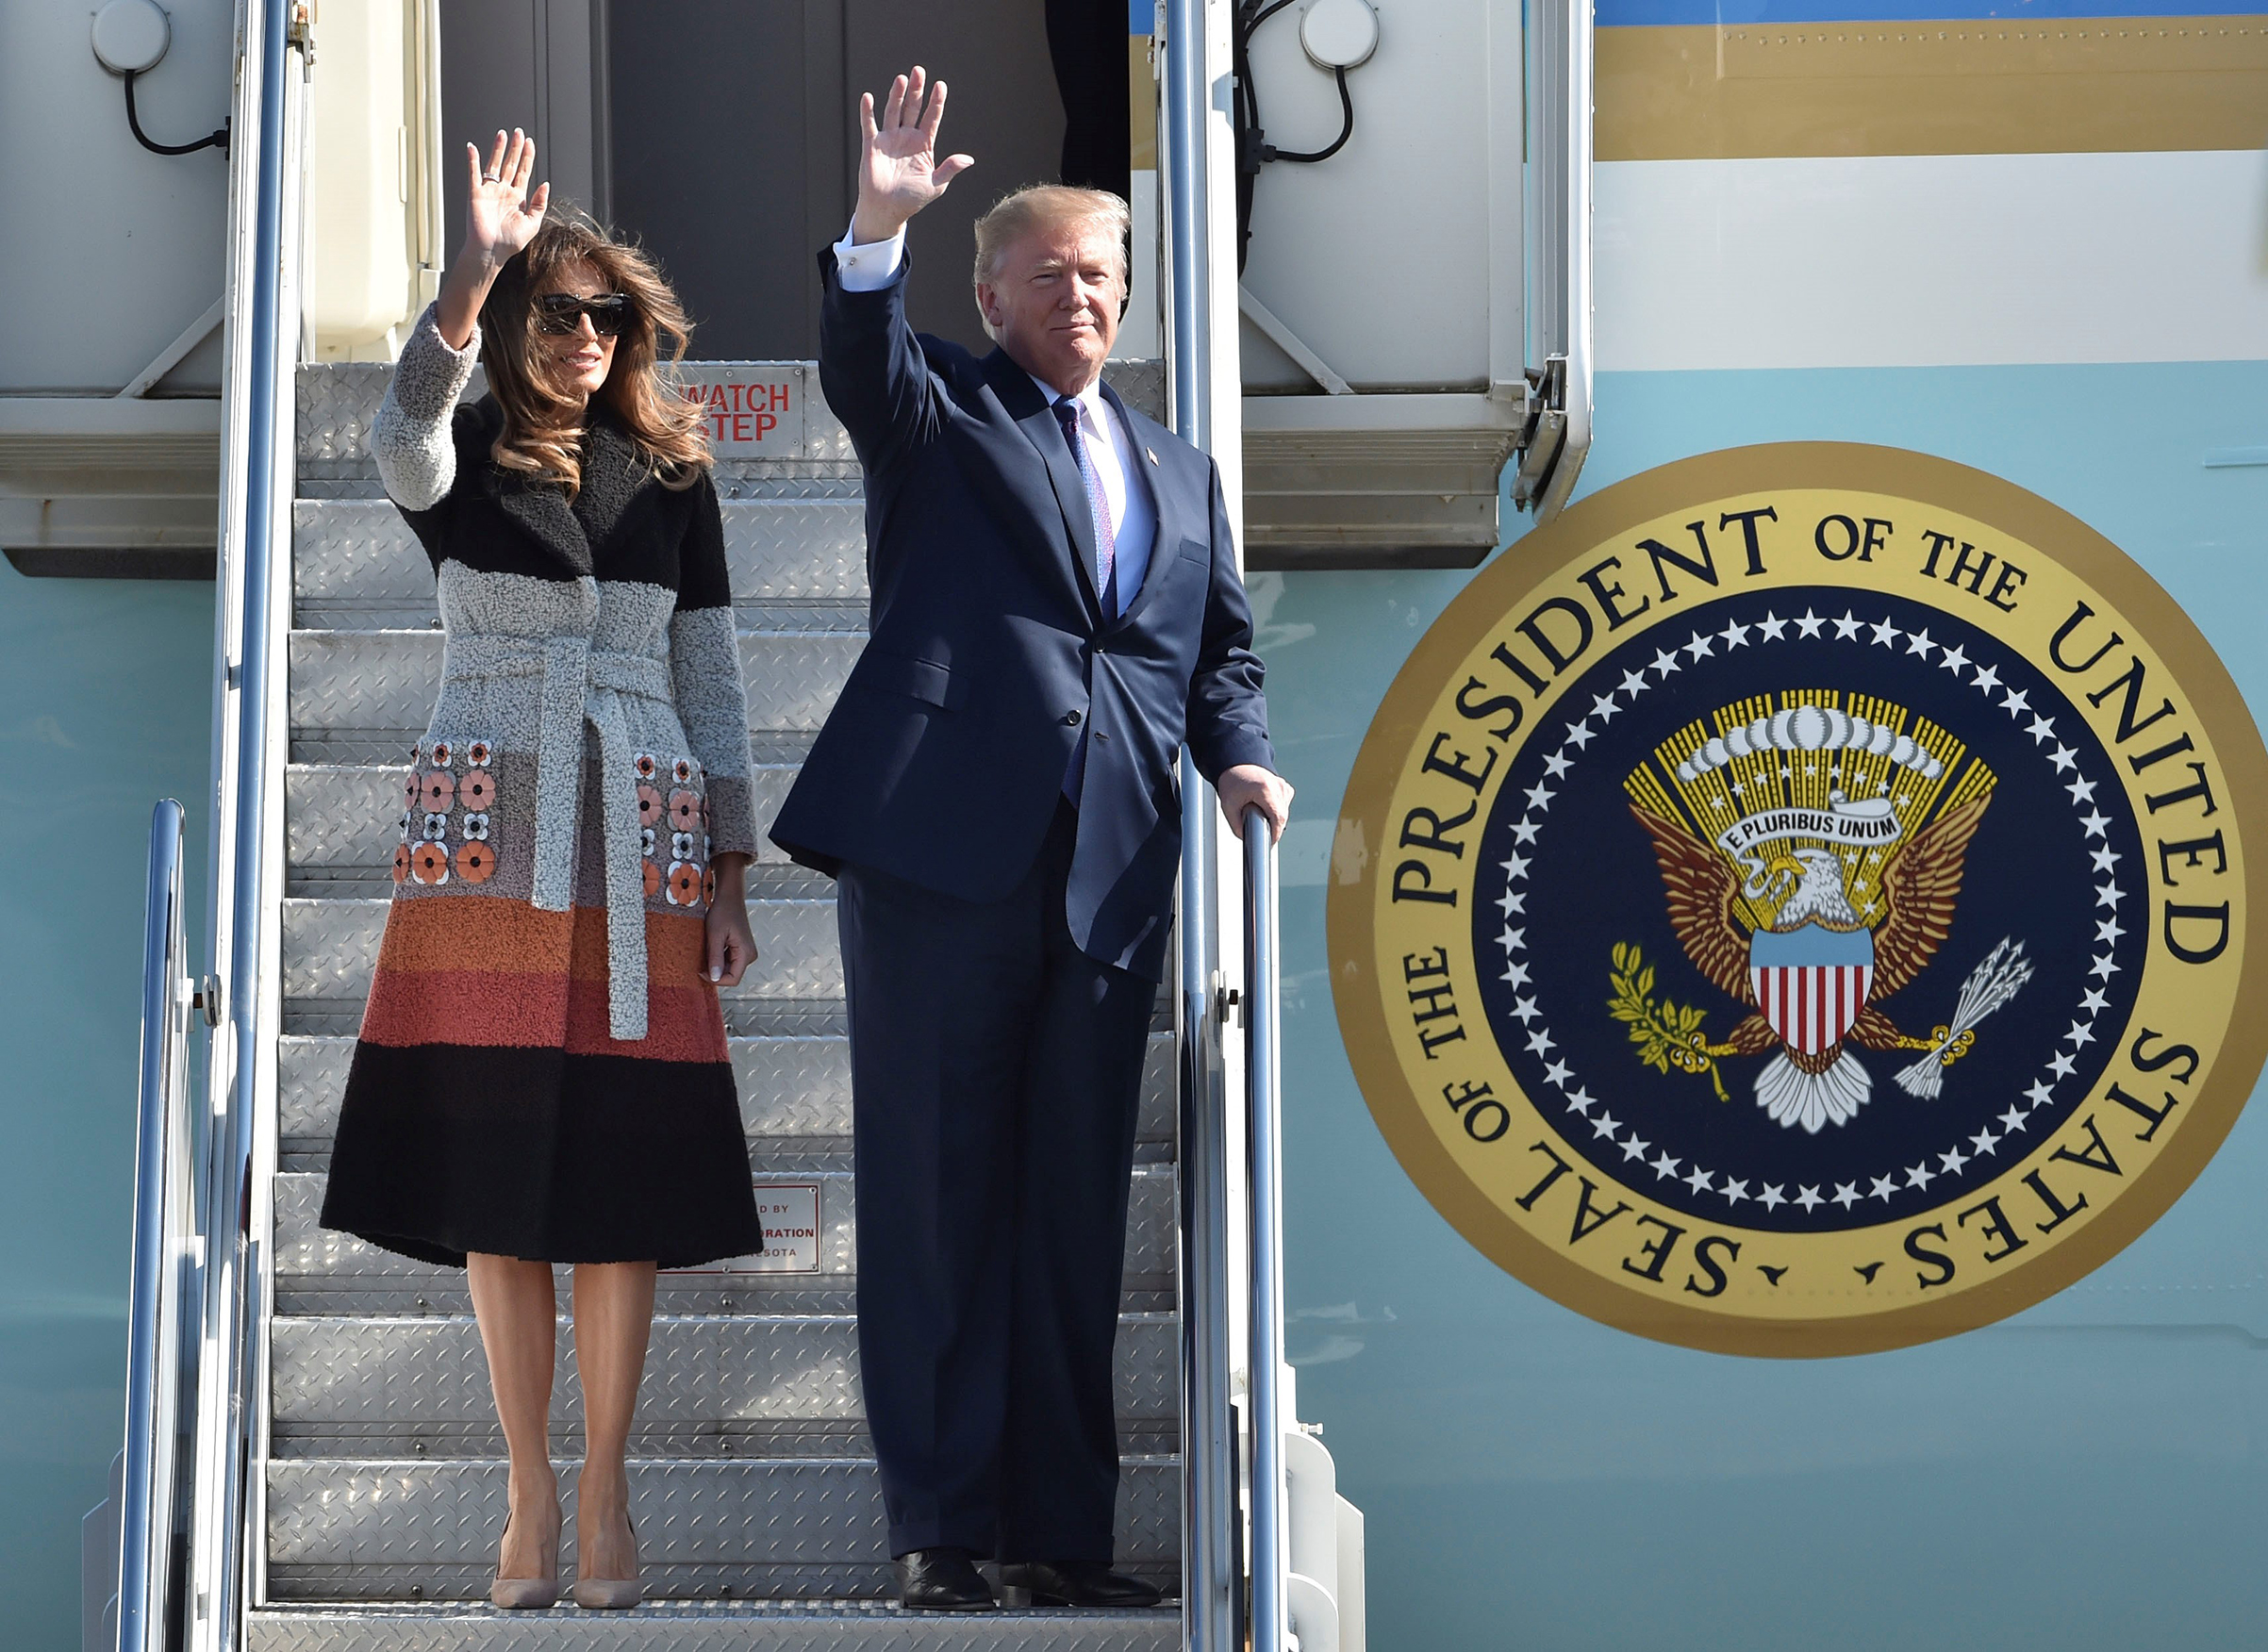 First lady Melania Trump, wearing a striped Fendi coat with floral embellishments, waves as she arrives at Yokota Air Base with her husband in Tokyo, Japan on Nov. 5, 2017.